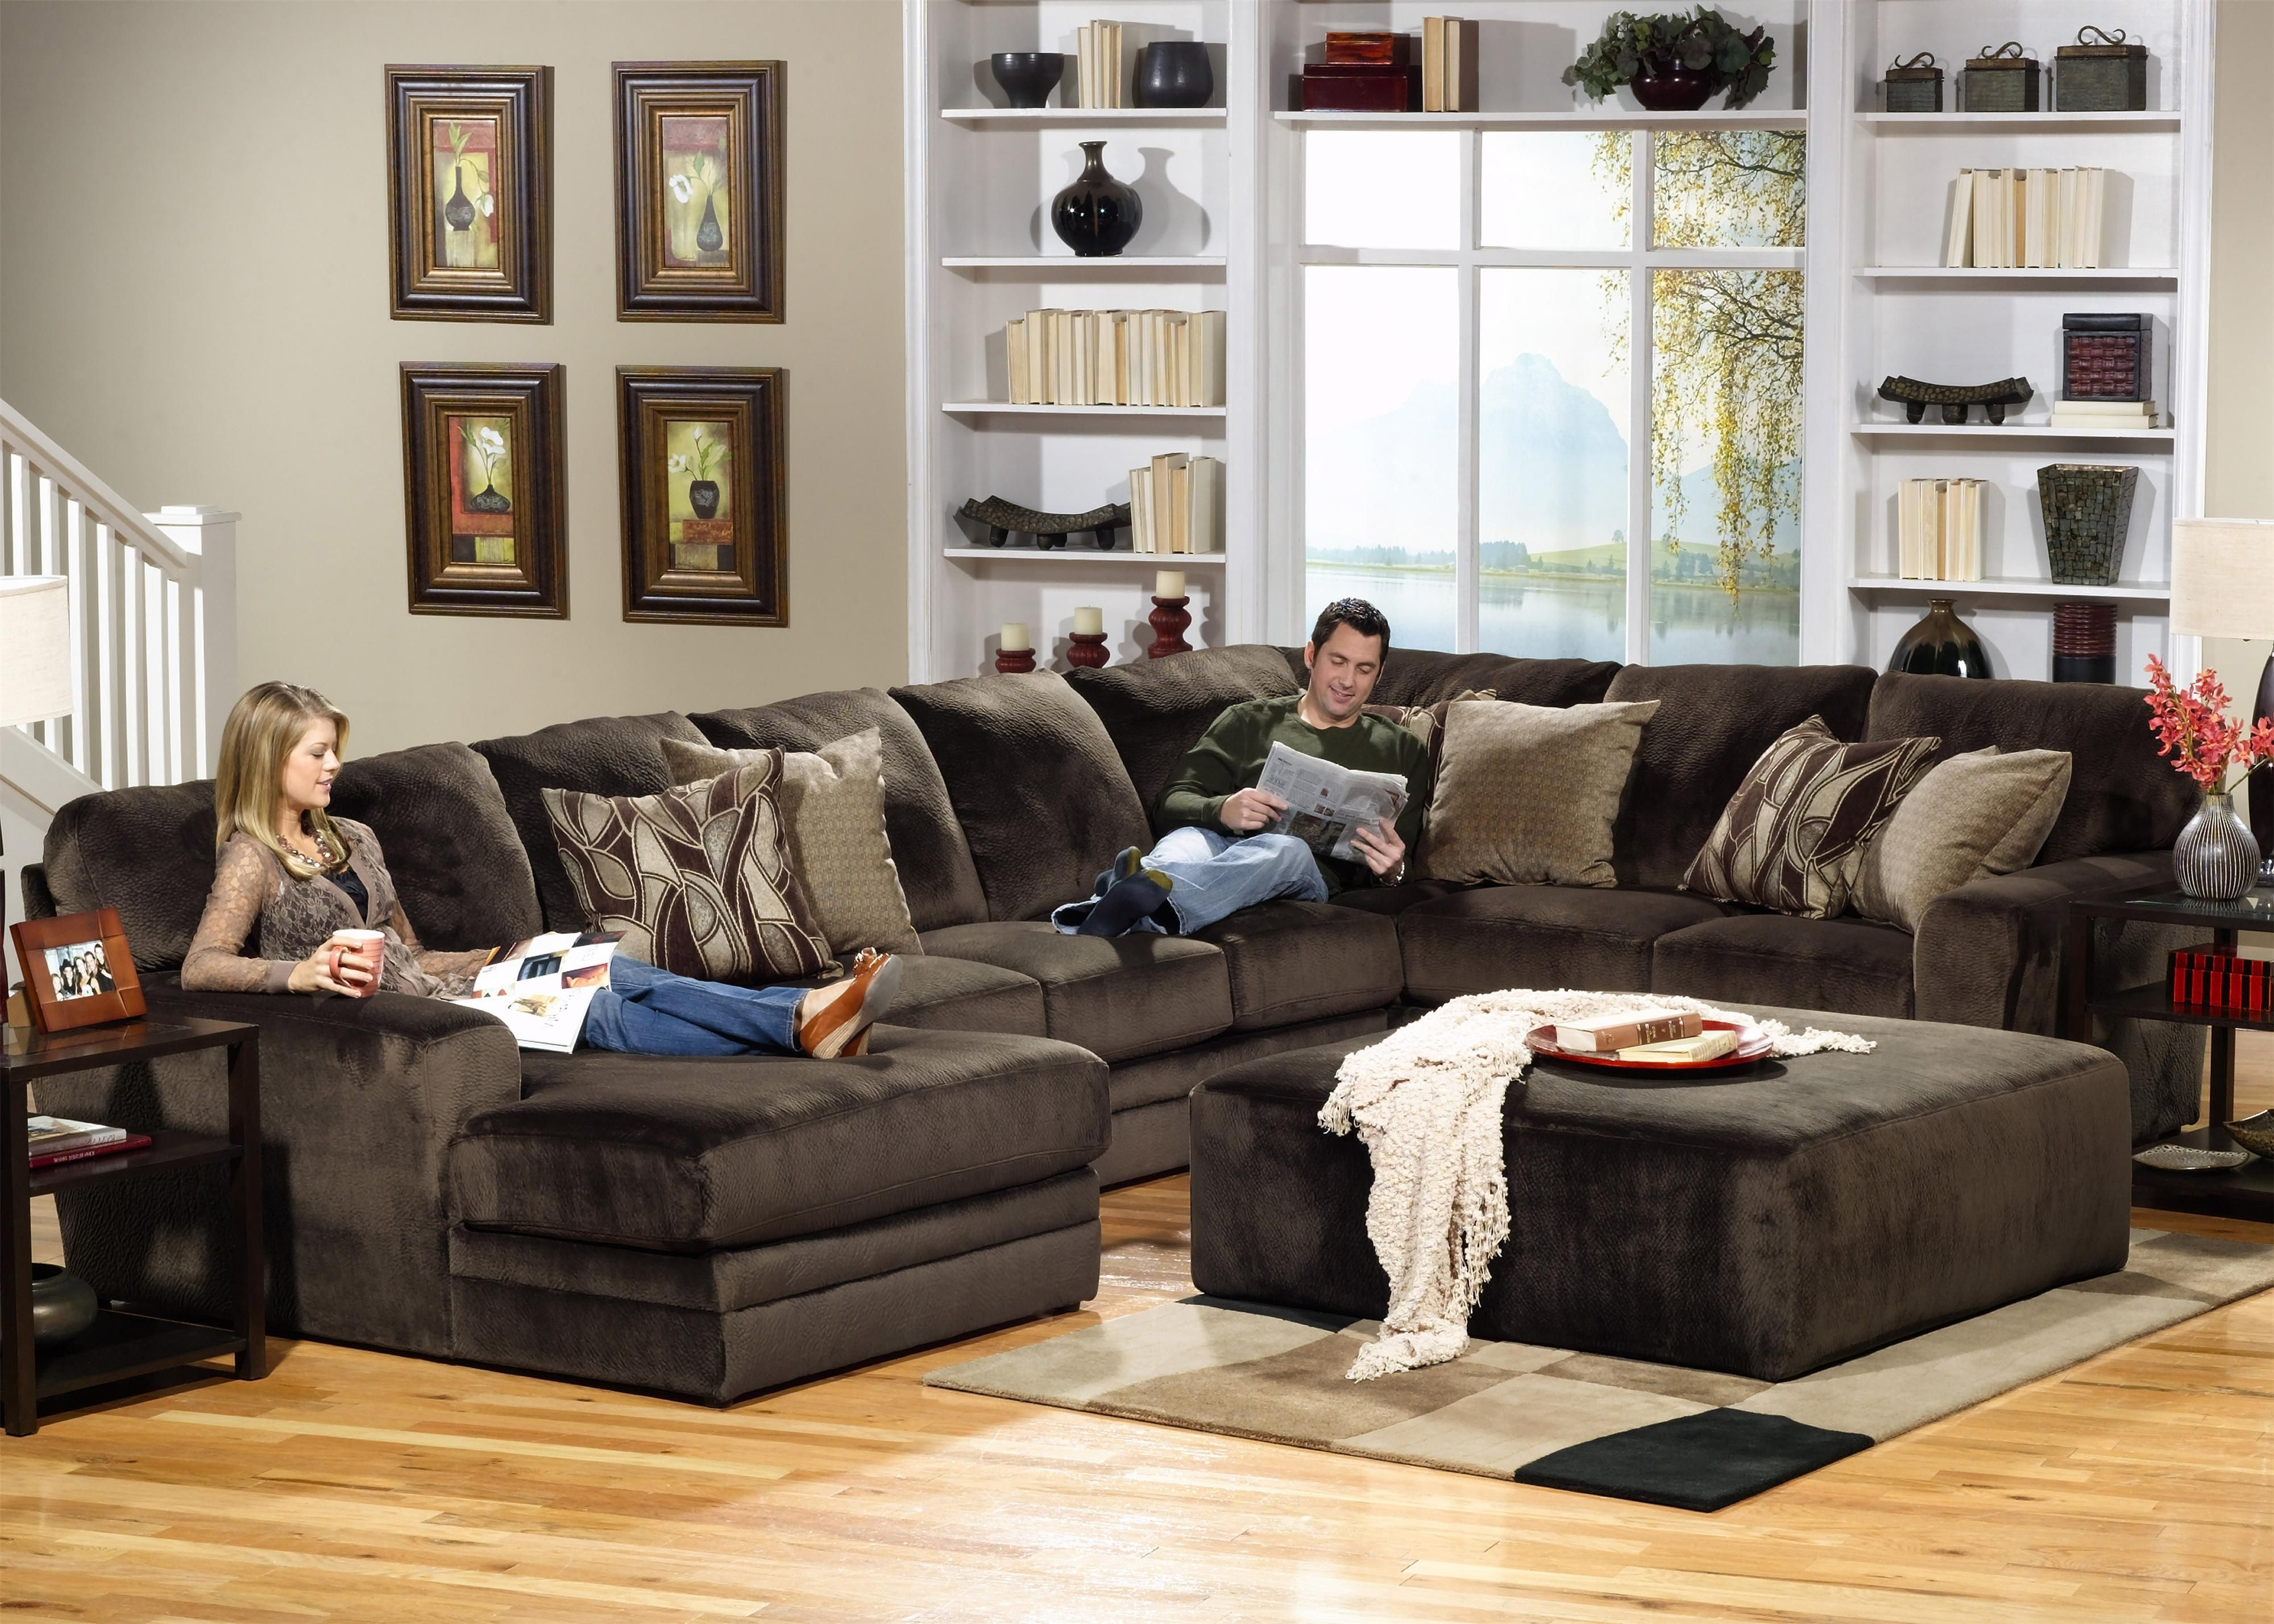 4377 Everest 3 Piece Sectional With Rsf Sectionjackson Furniture Regarding Janesville Wi Sectional Sofas (Image 1 of 10)